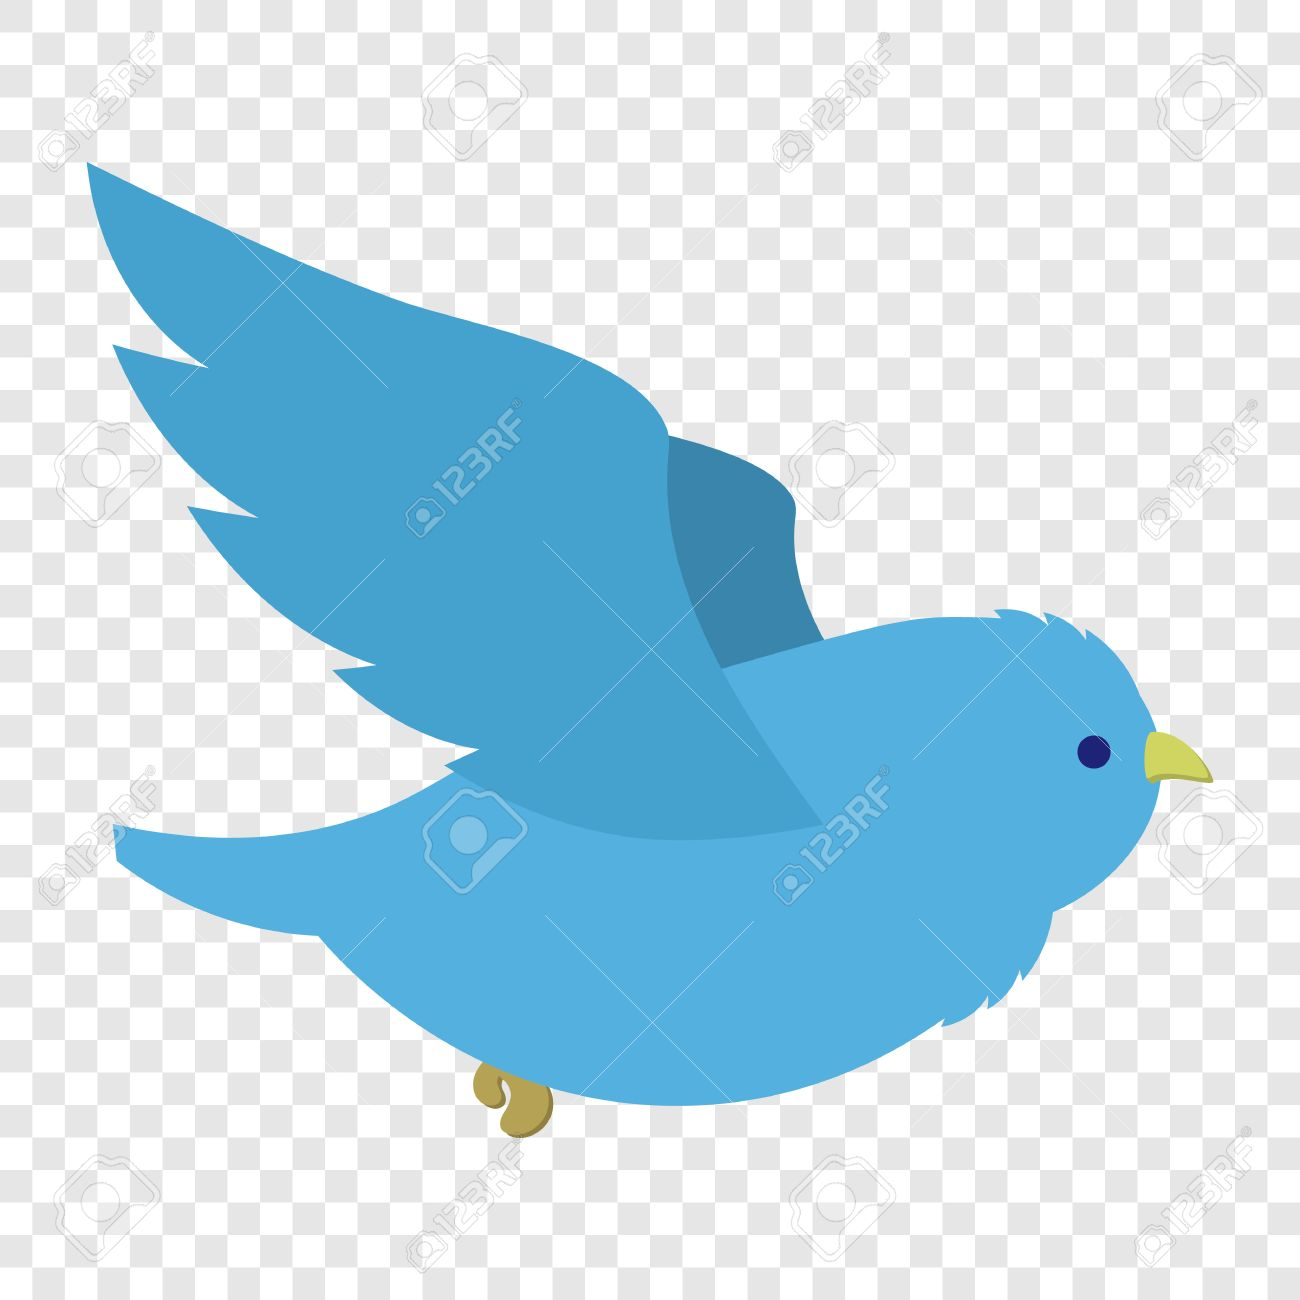 Flying blue bird in cartoon style on transparent background.